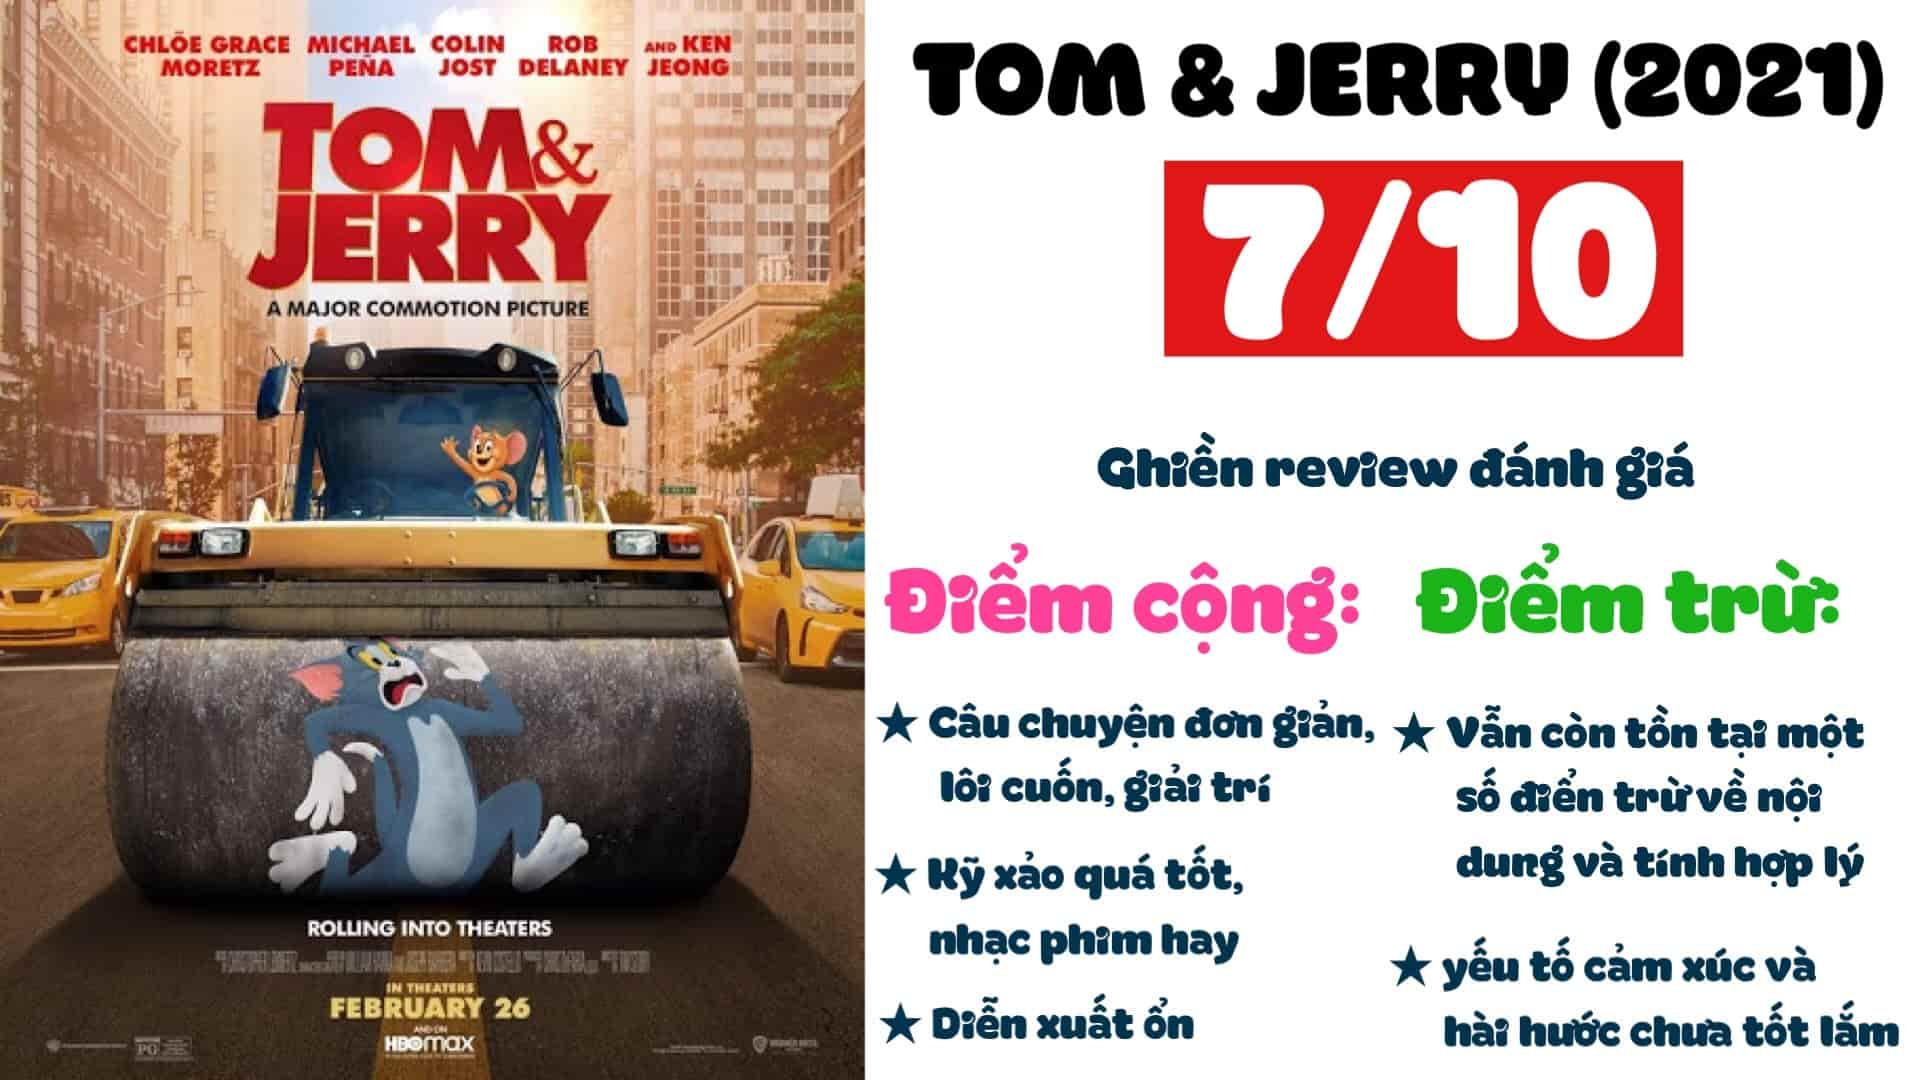 Ghien review - Tom and Jerry 2021